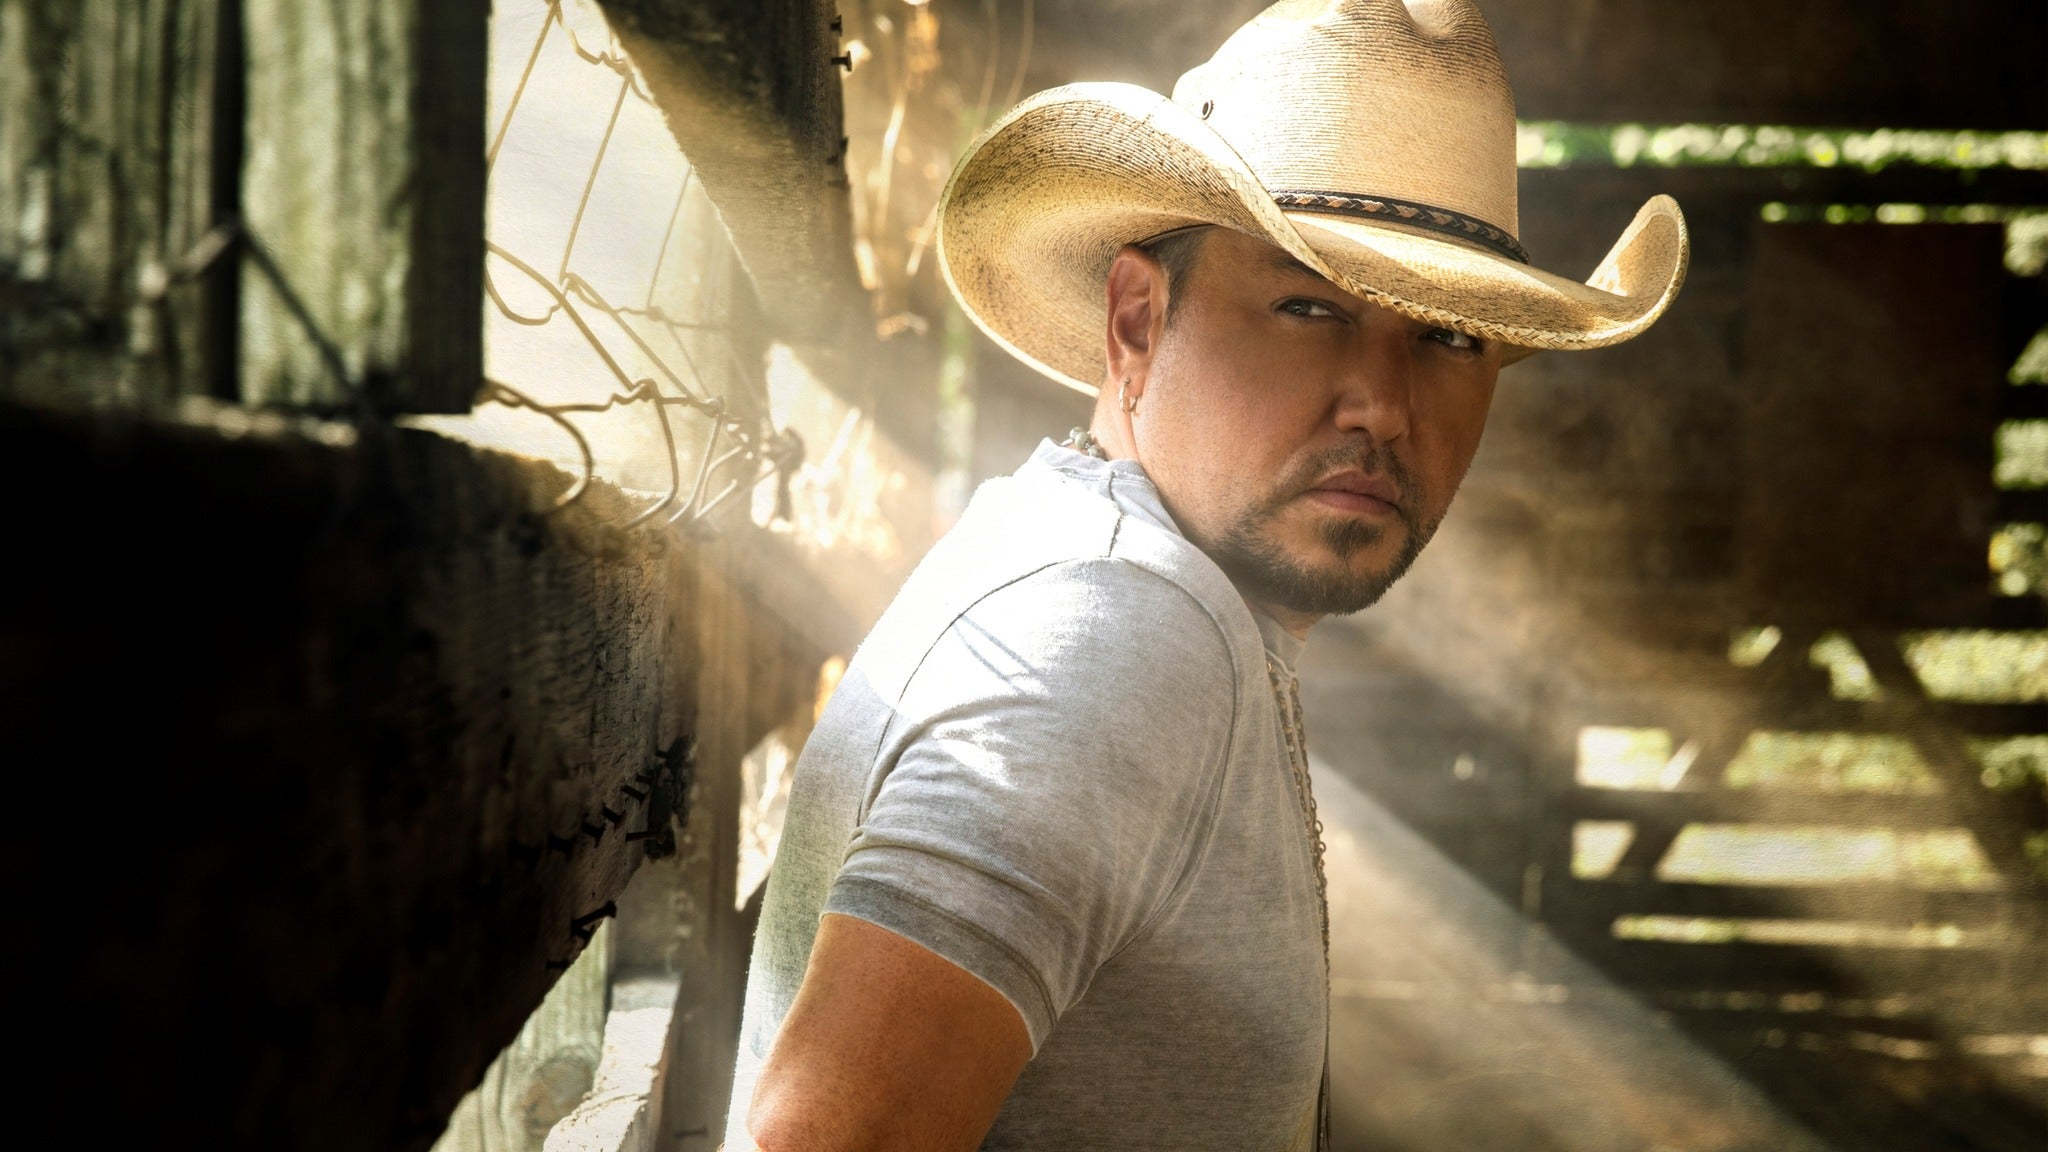 Jason Aldean - Ride All Night Tour 2019